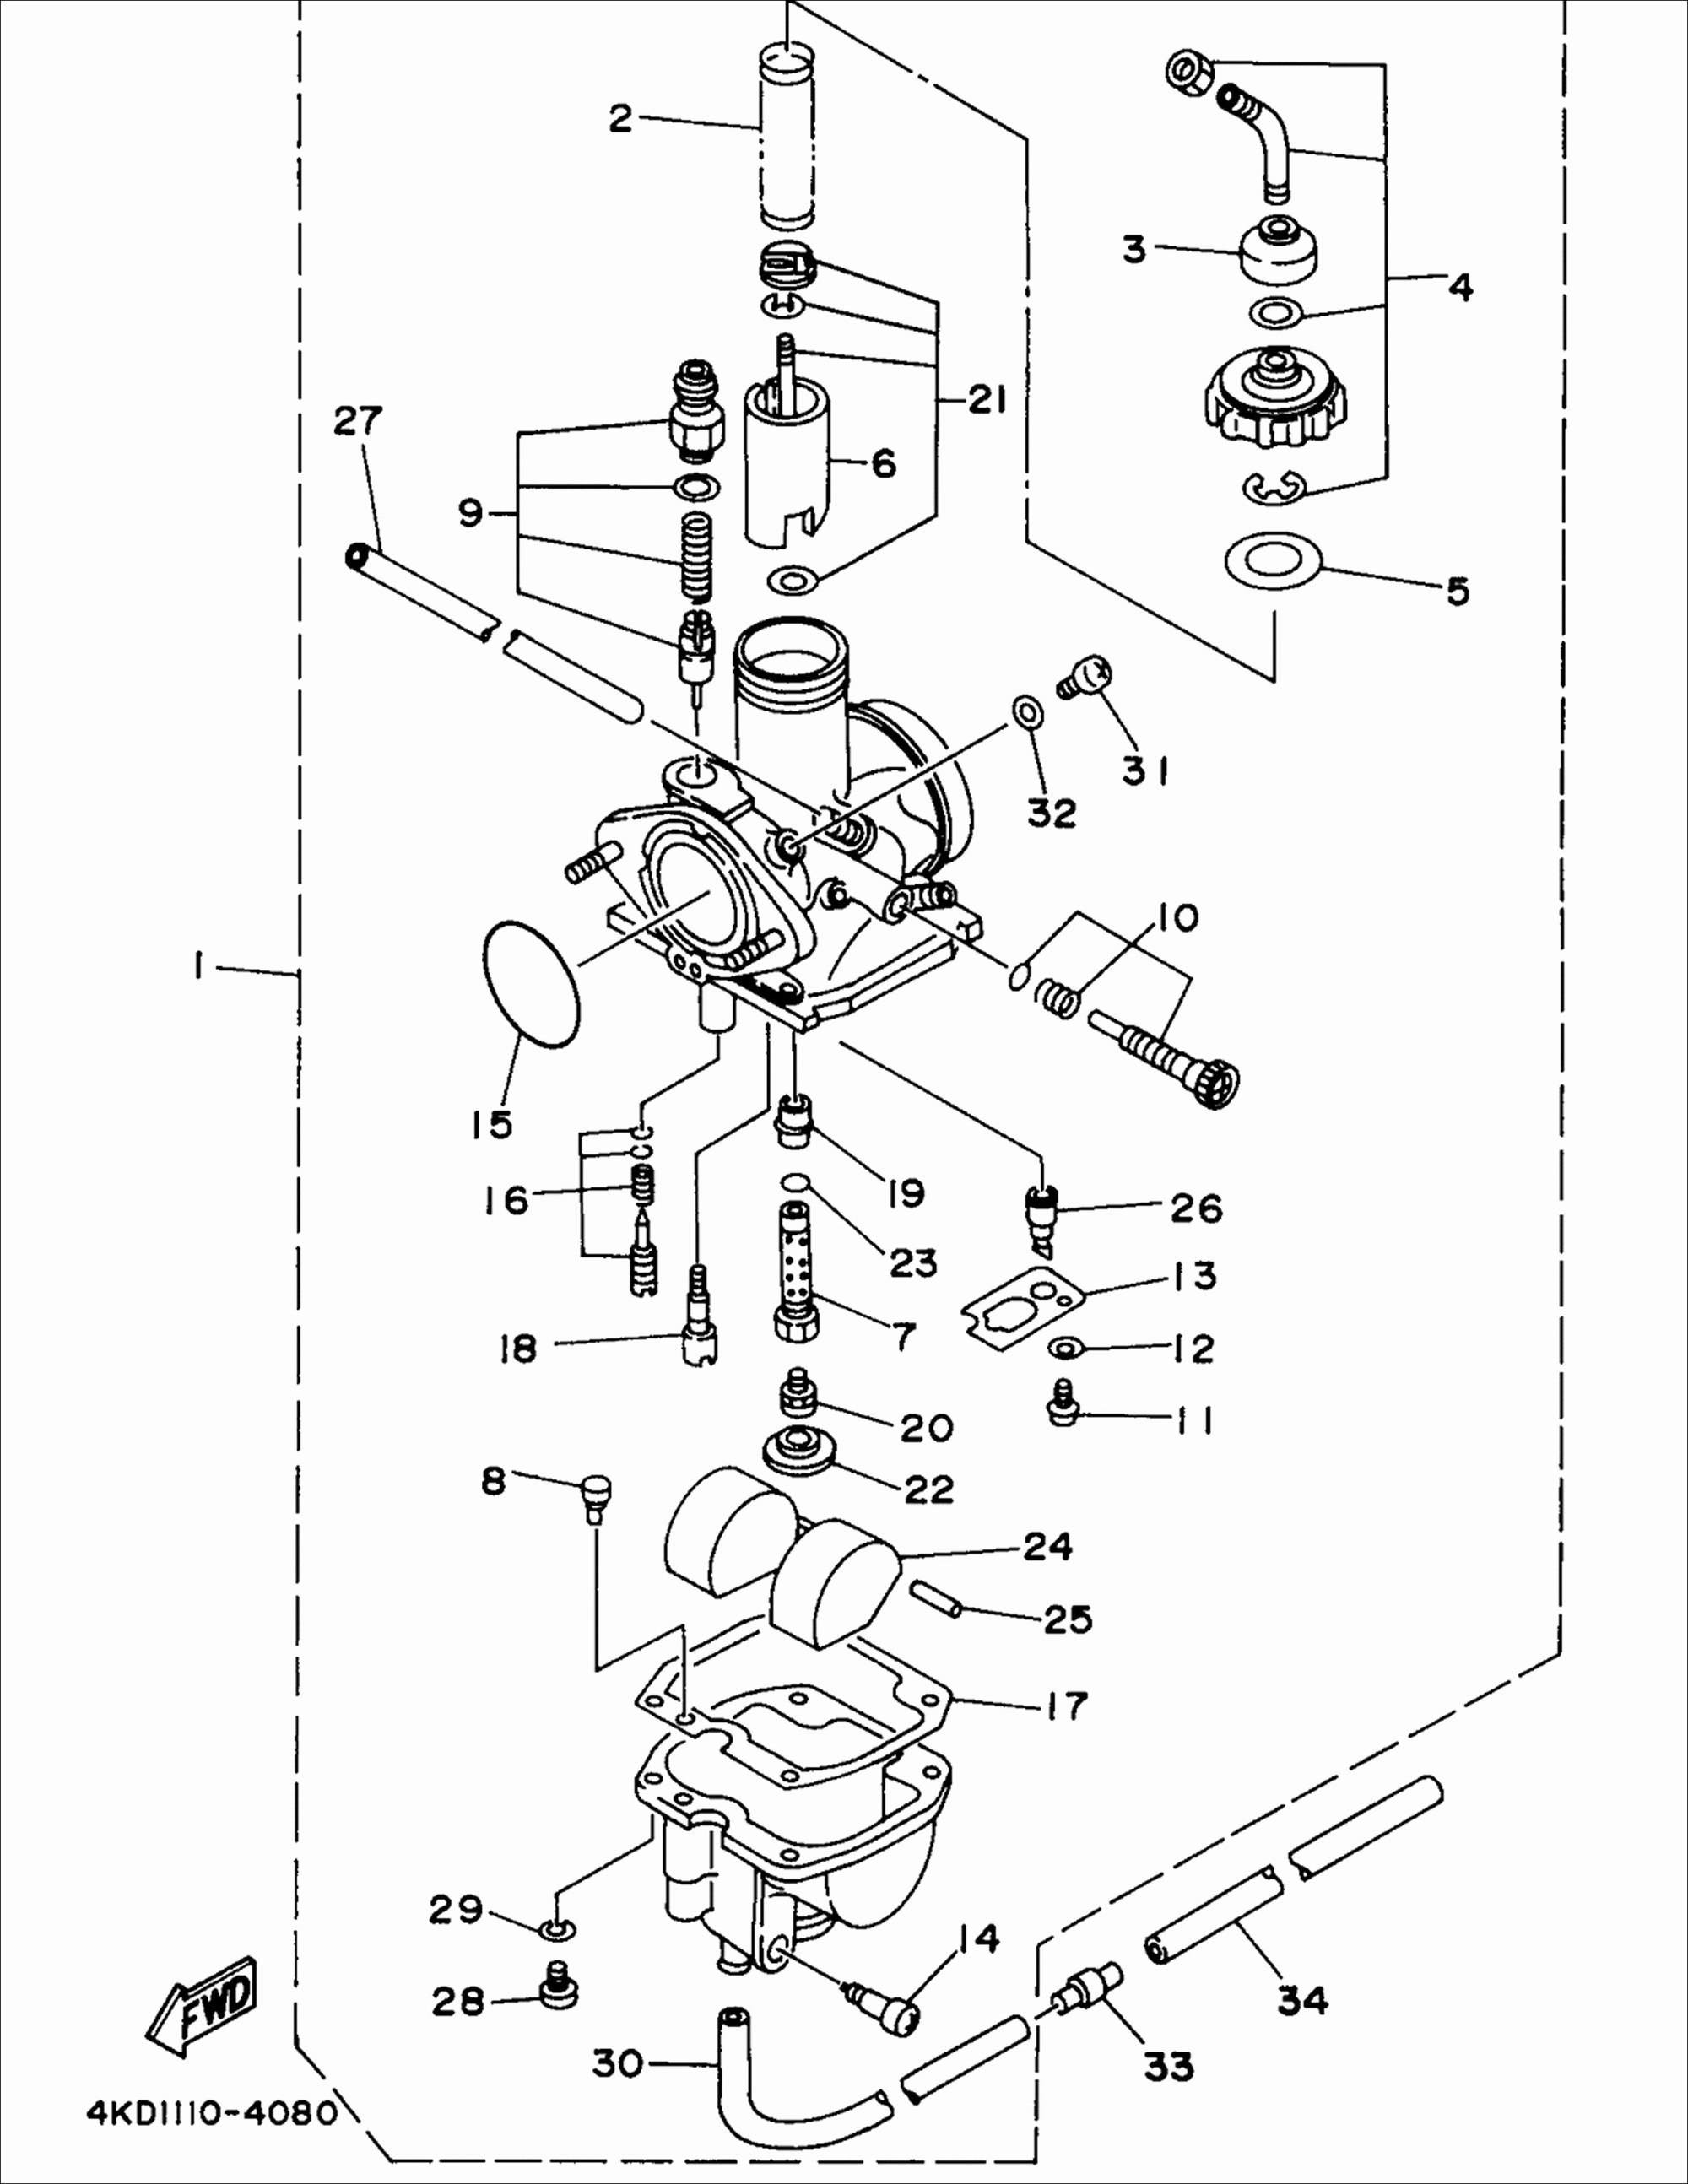 hight resolution of 1995 pontiac bonneville fuse panel diagram worksheet and wiring rh bookinc co 2001 pontiac bonneville specs